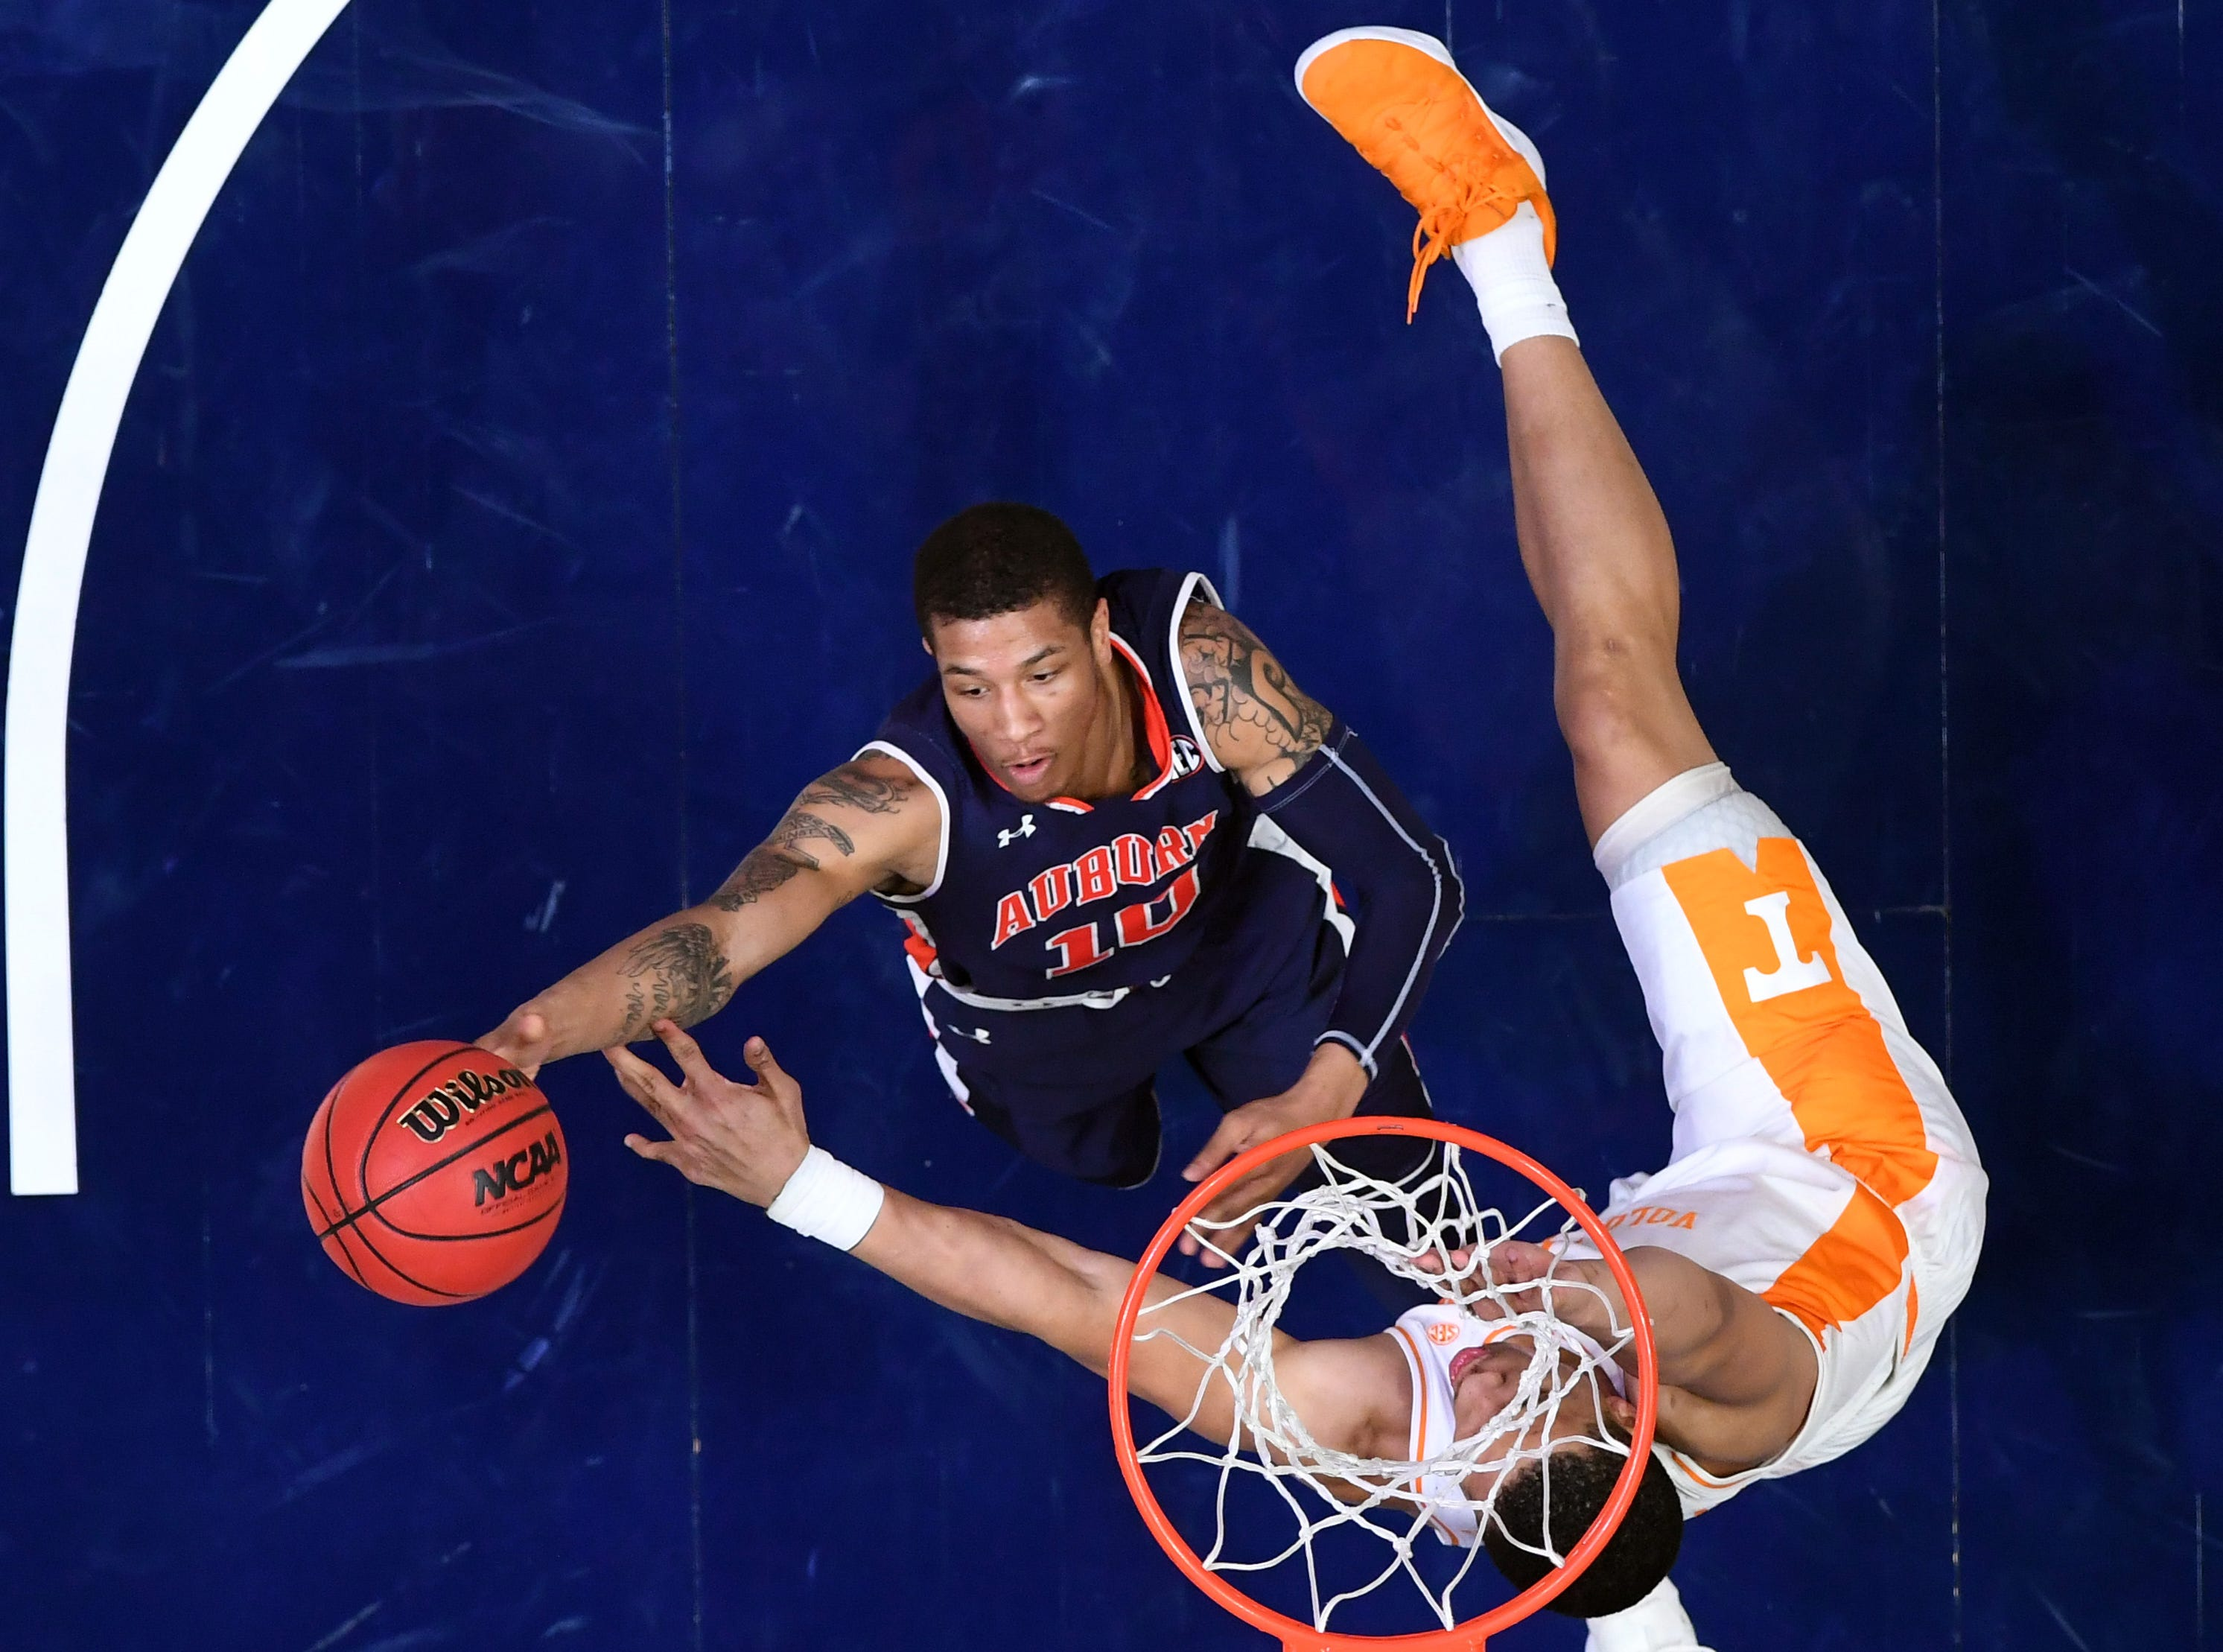 Mar 17, 2019; Nashville, TN, USA; Auburn Tigers guard Samir Doughty (10) shoots over Tennessee Volunteers forward Grant Williams (2) in the SEC conference tournament championship game at Bridgestone Arena. Mandatory Credit: Christopher Hanewinckel-USA TODAY Sports